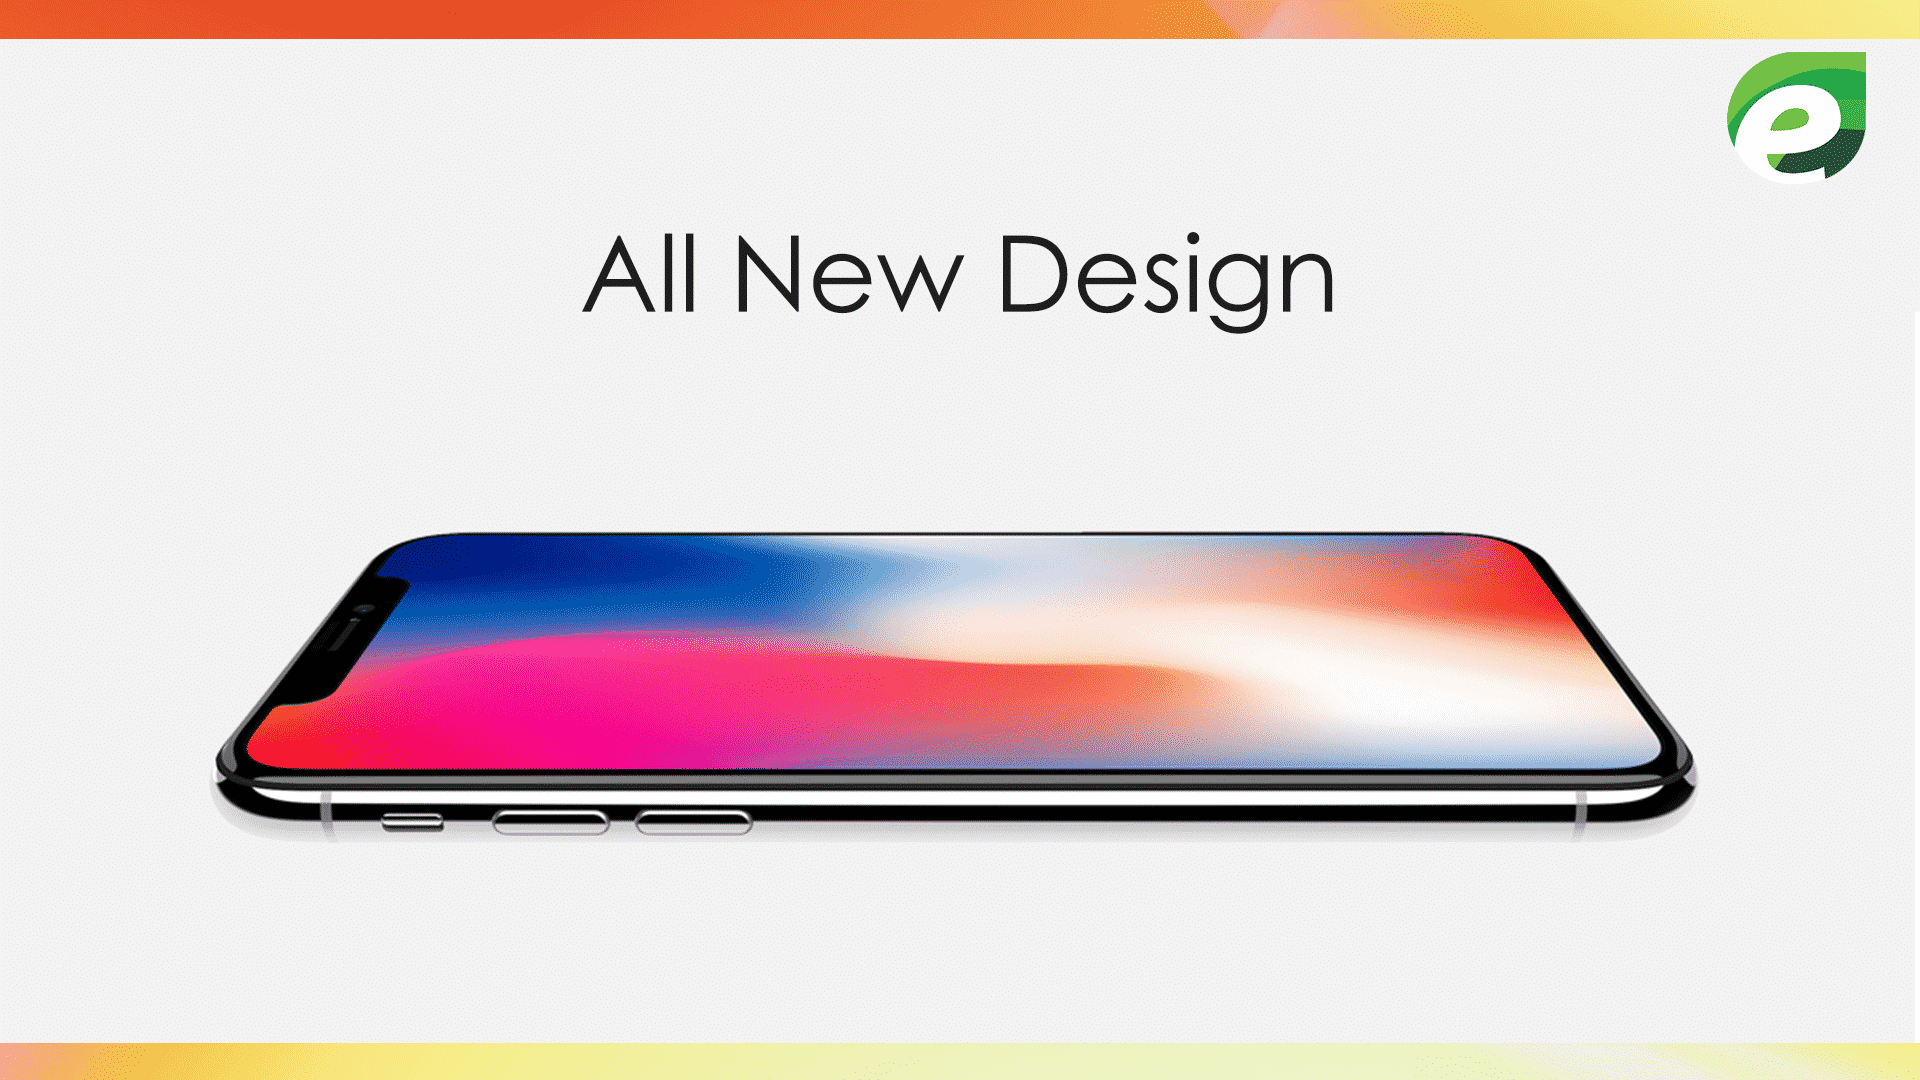 iphone x- All new design